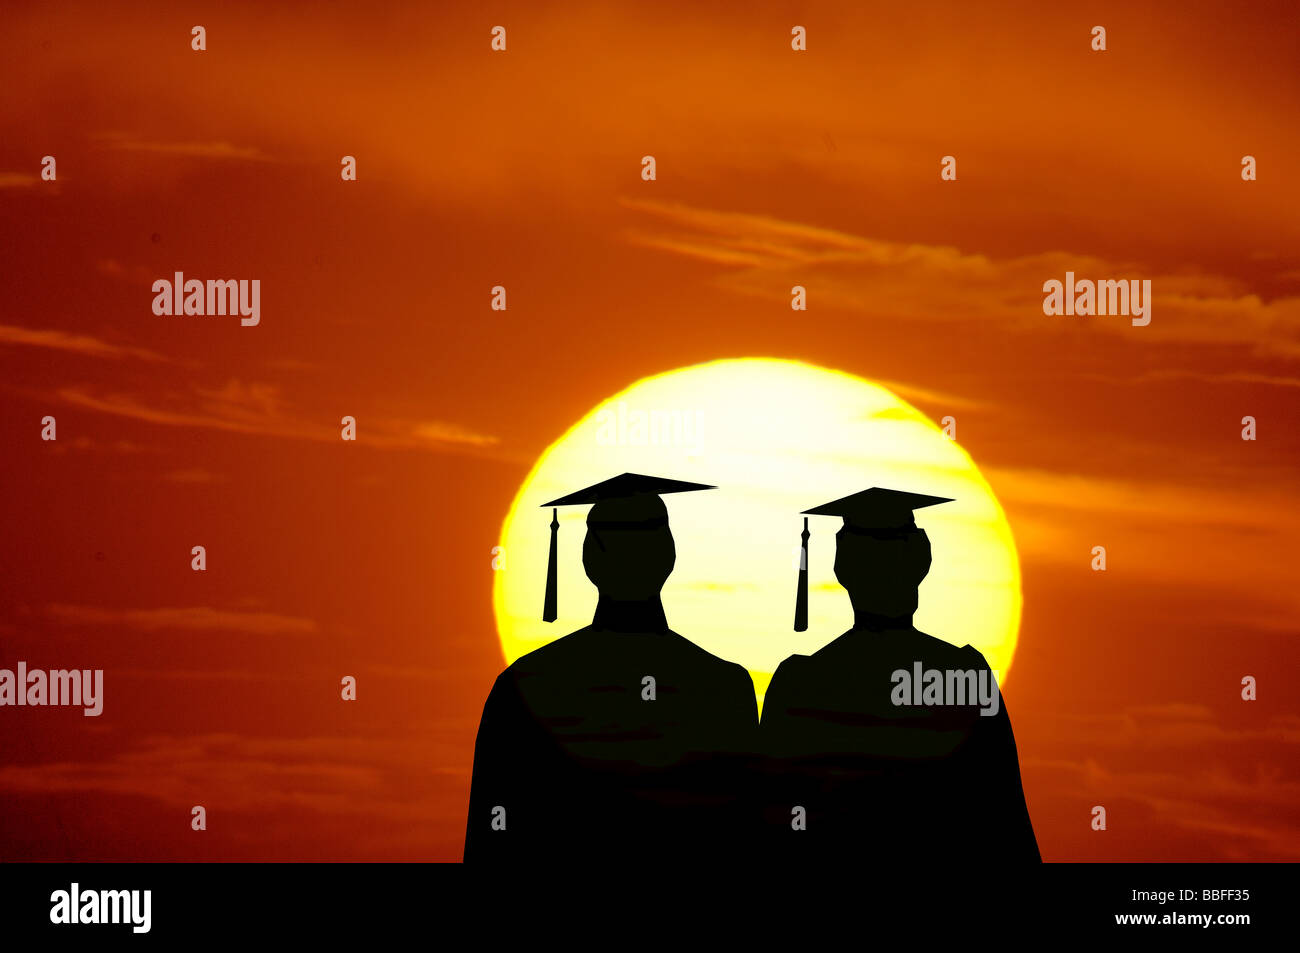 vector illustration of male and female graduates looking at sunset - Stock Image